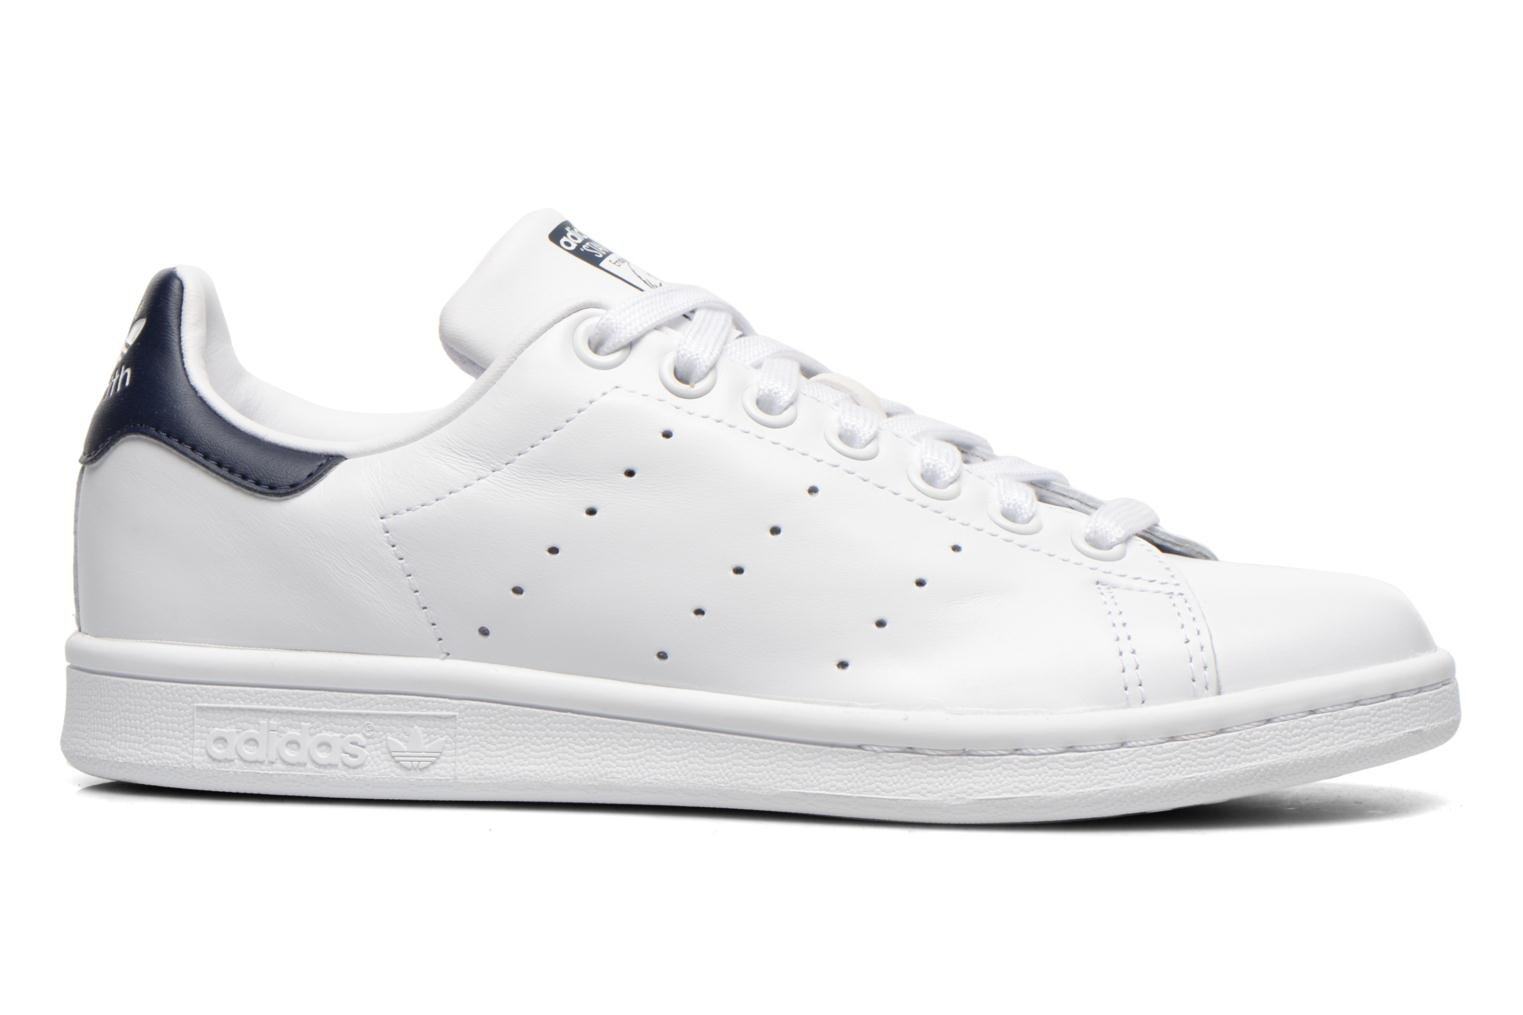 Stan Smith W Blacou/Blacou/Nounav